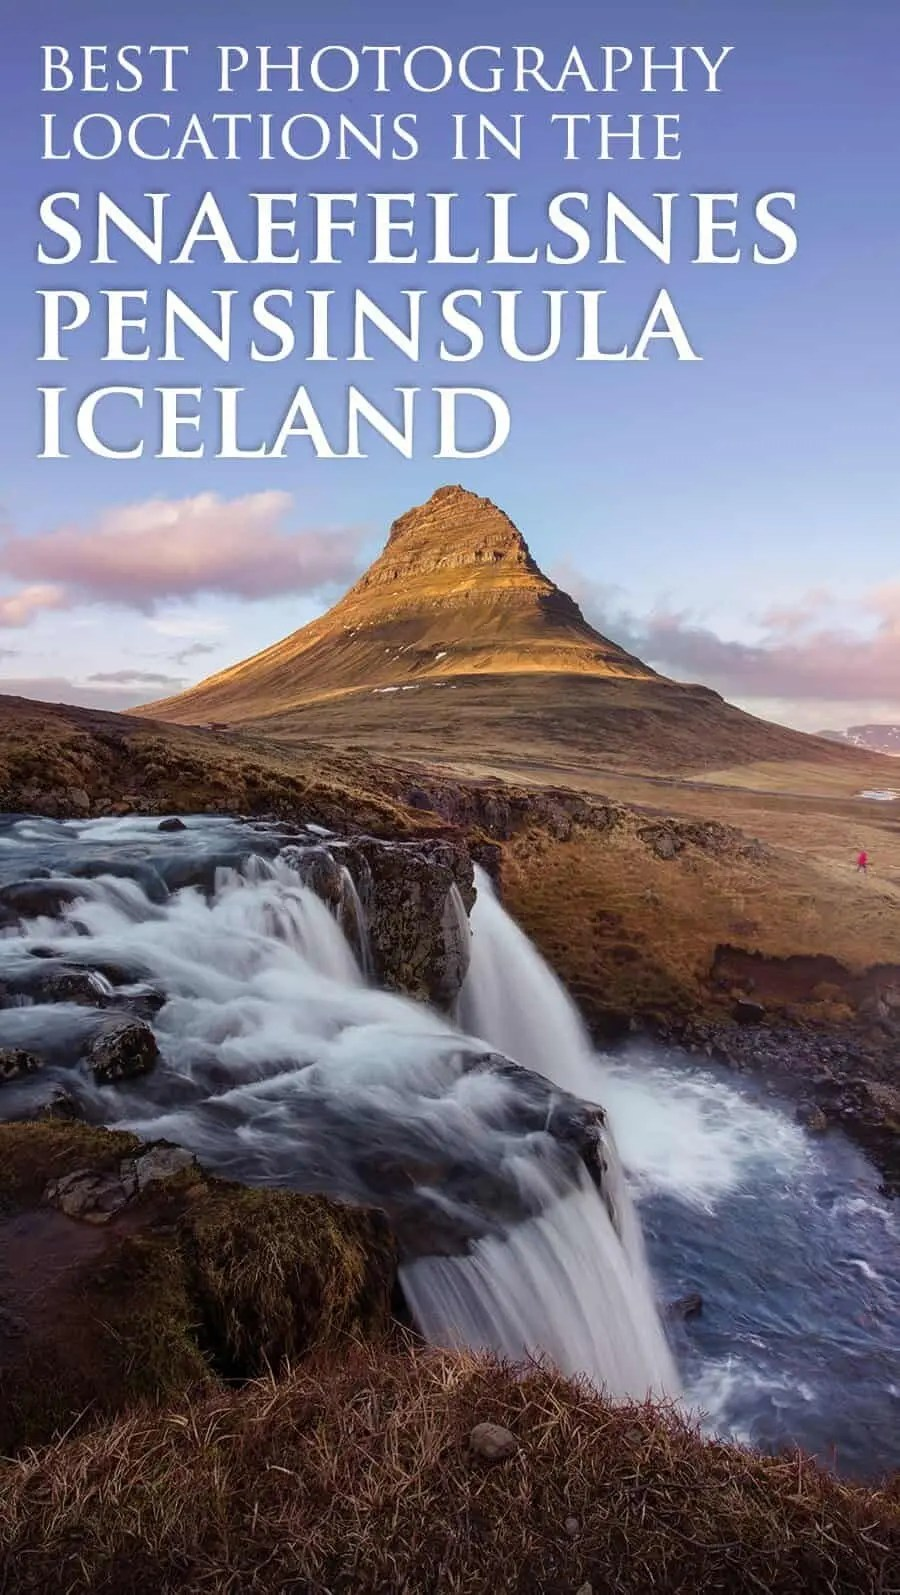 Iceland West coast photography locations along the Snaefellsnes Peninsula by The Wandering Lens